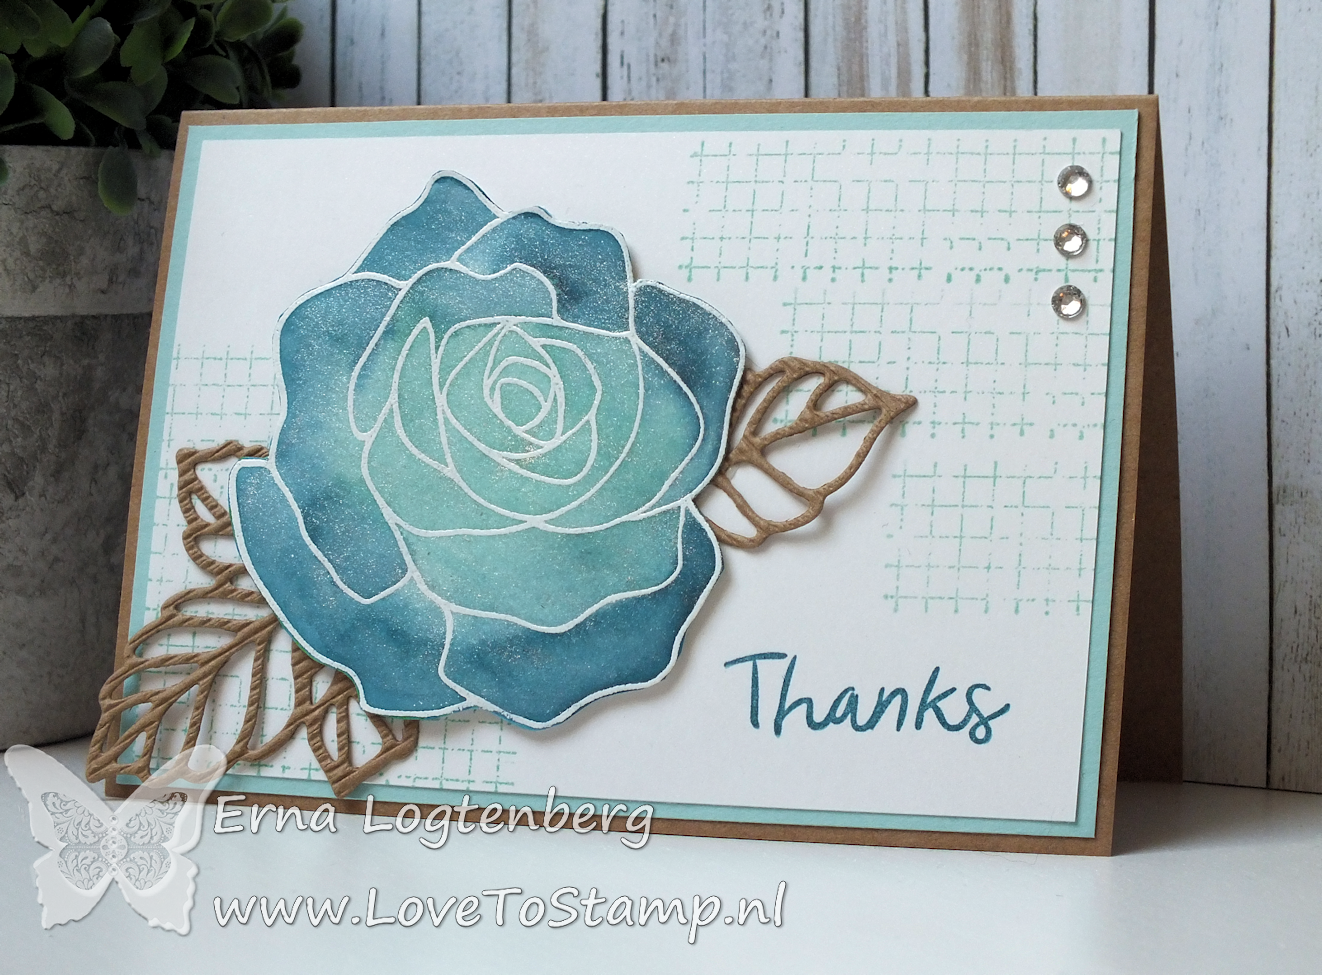 Stampin'Up! met Erna Logtenberg (Love To Stamp): Stampin'Up! Totally Techniques